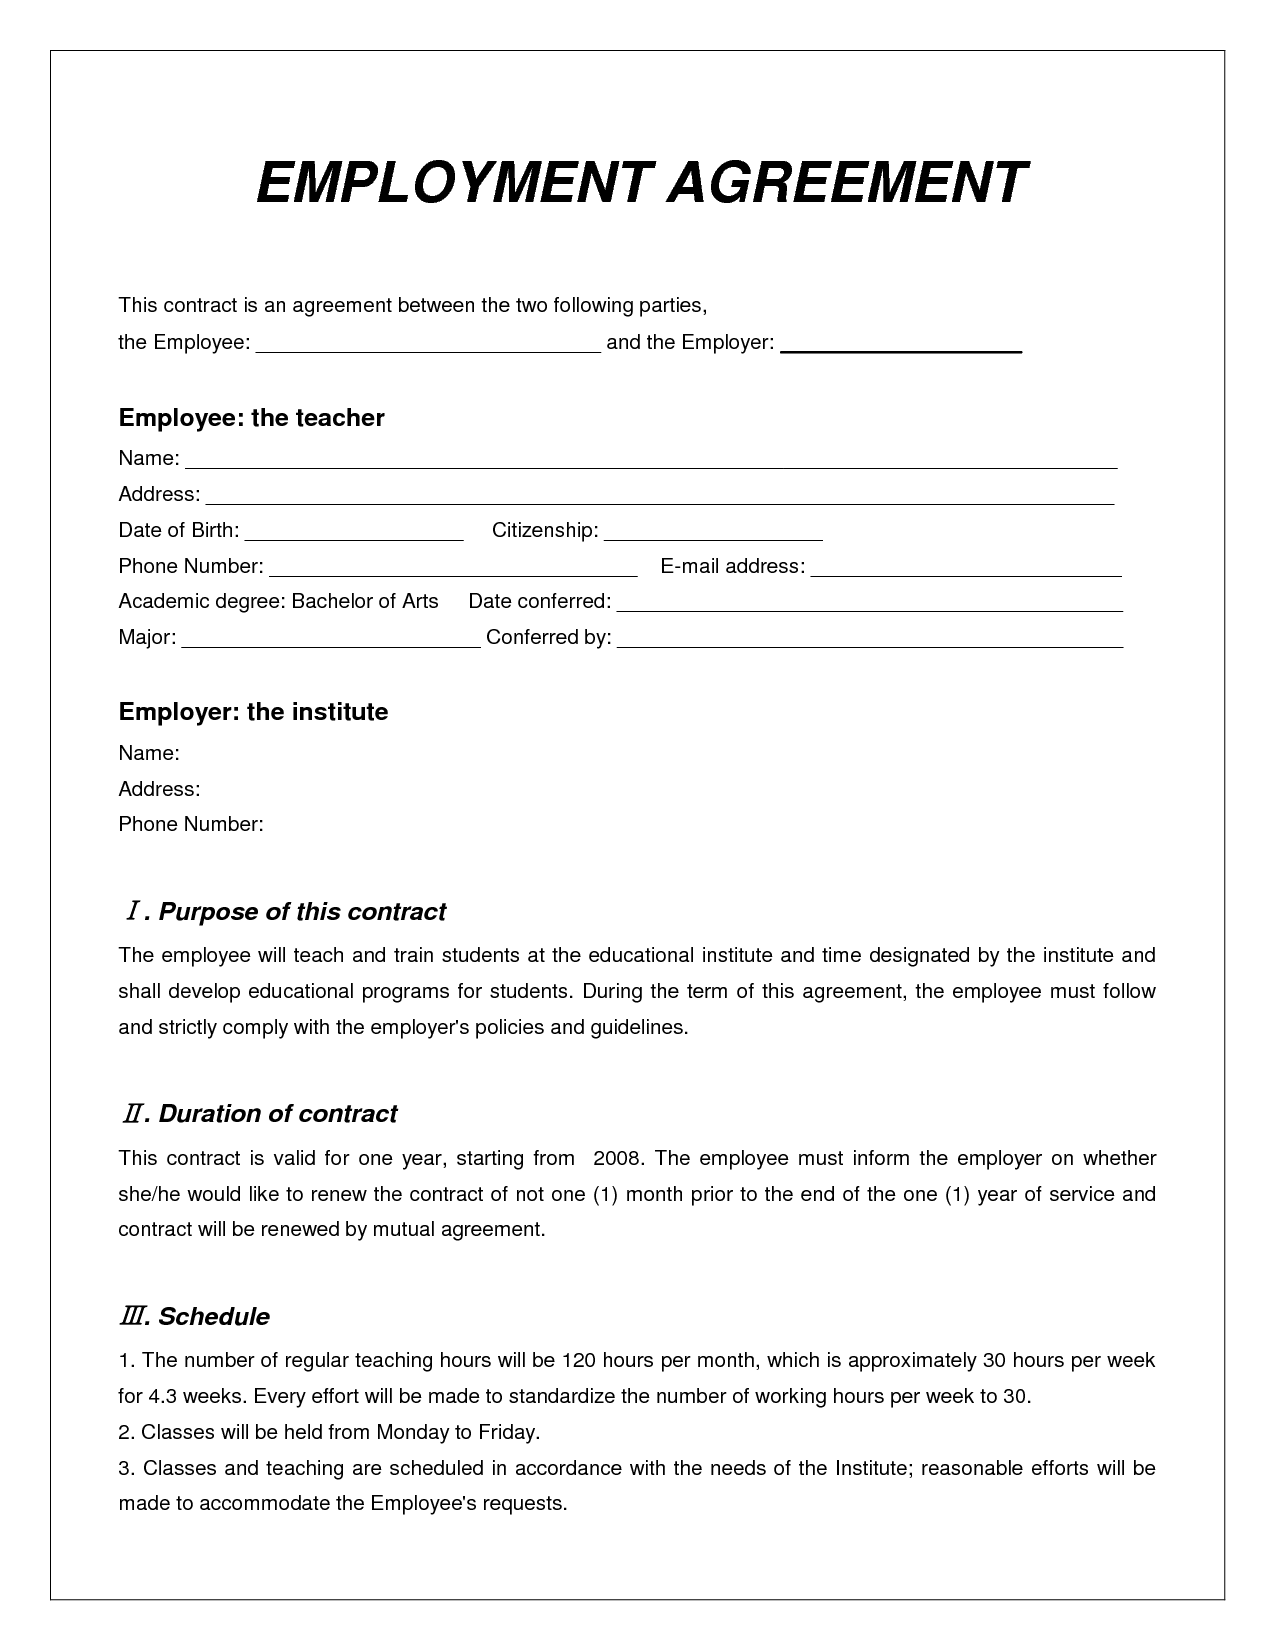 employment agreement template gtld world congress